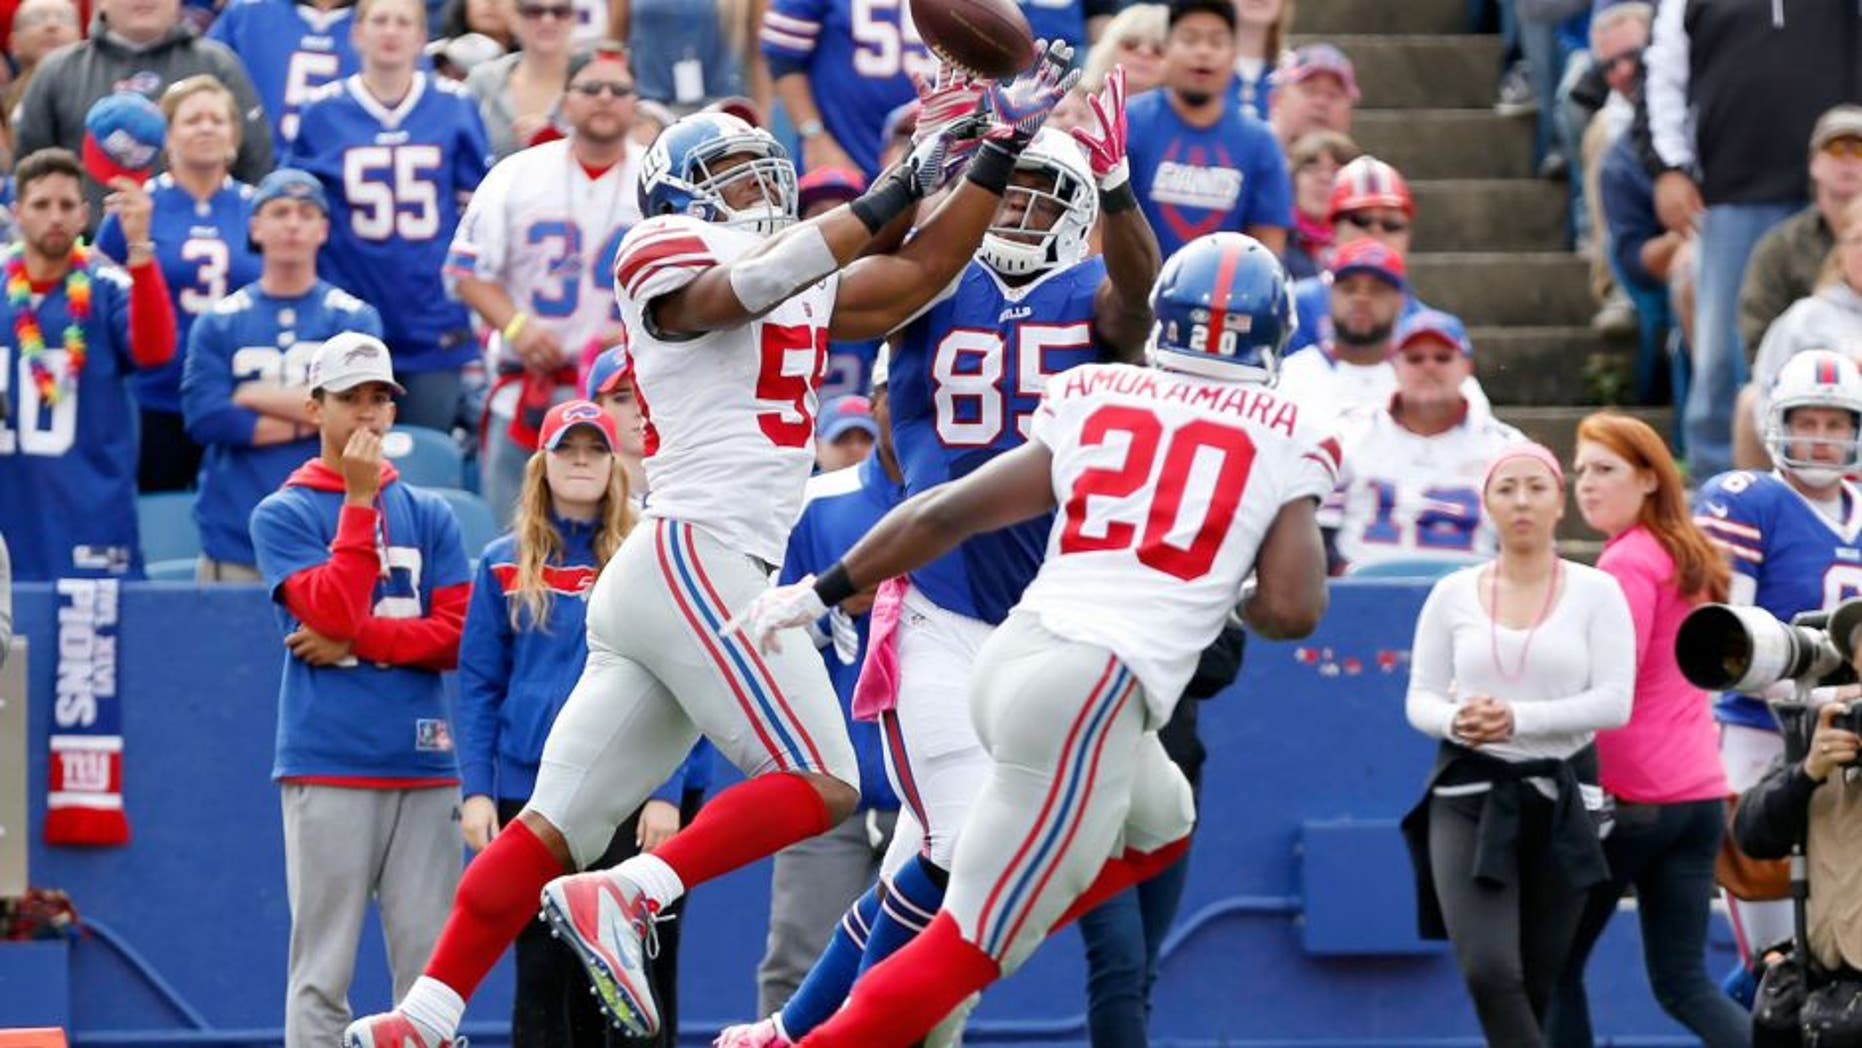 Oct 4, 2015; Orchard Park, NY, USA; New York Giants outside linebacker Devon Kennard (59) intercepts a pass intended for Buffalo Bills tight end Charles Clay (85) during the first half at Ralph Wilson Stadium. Mandatory Credit: Kevin Hoffman-USA TODAY Sports